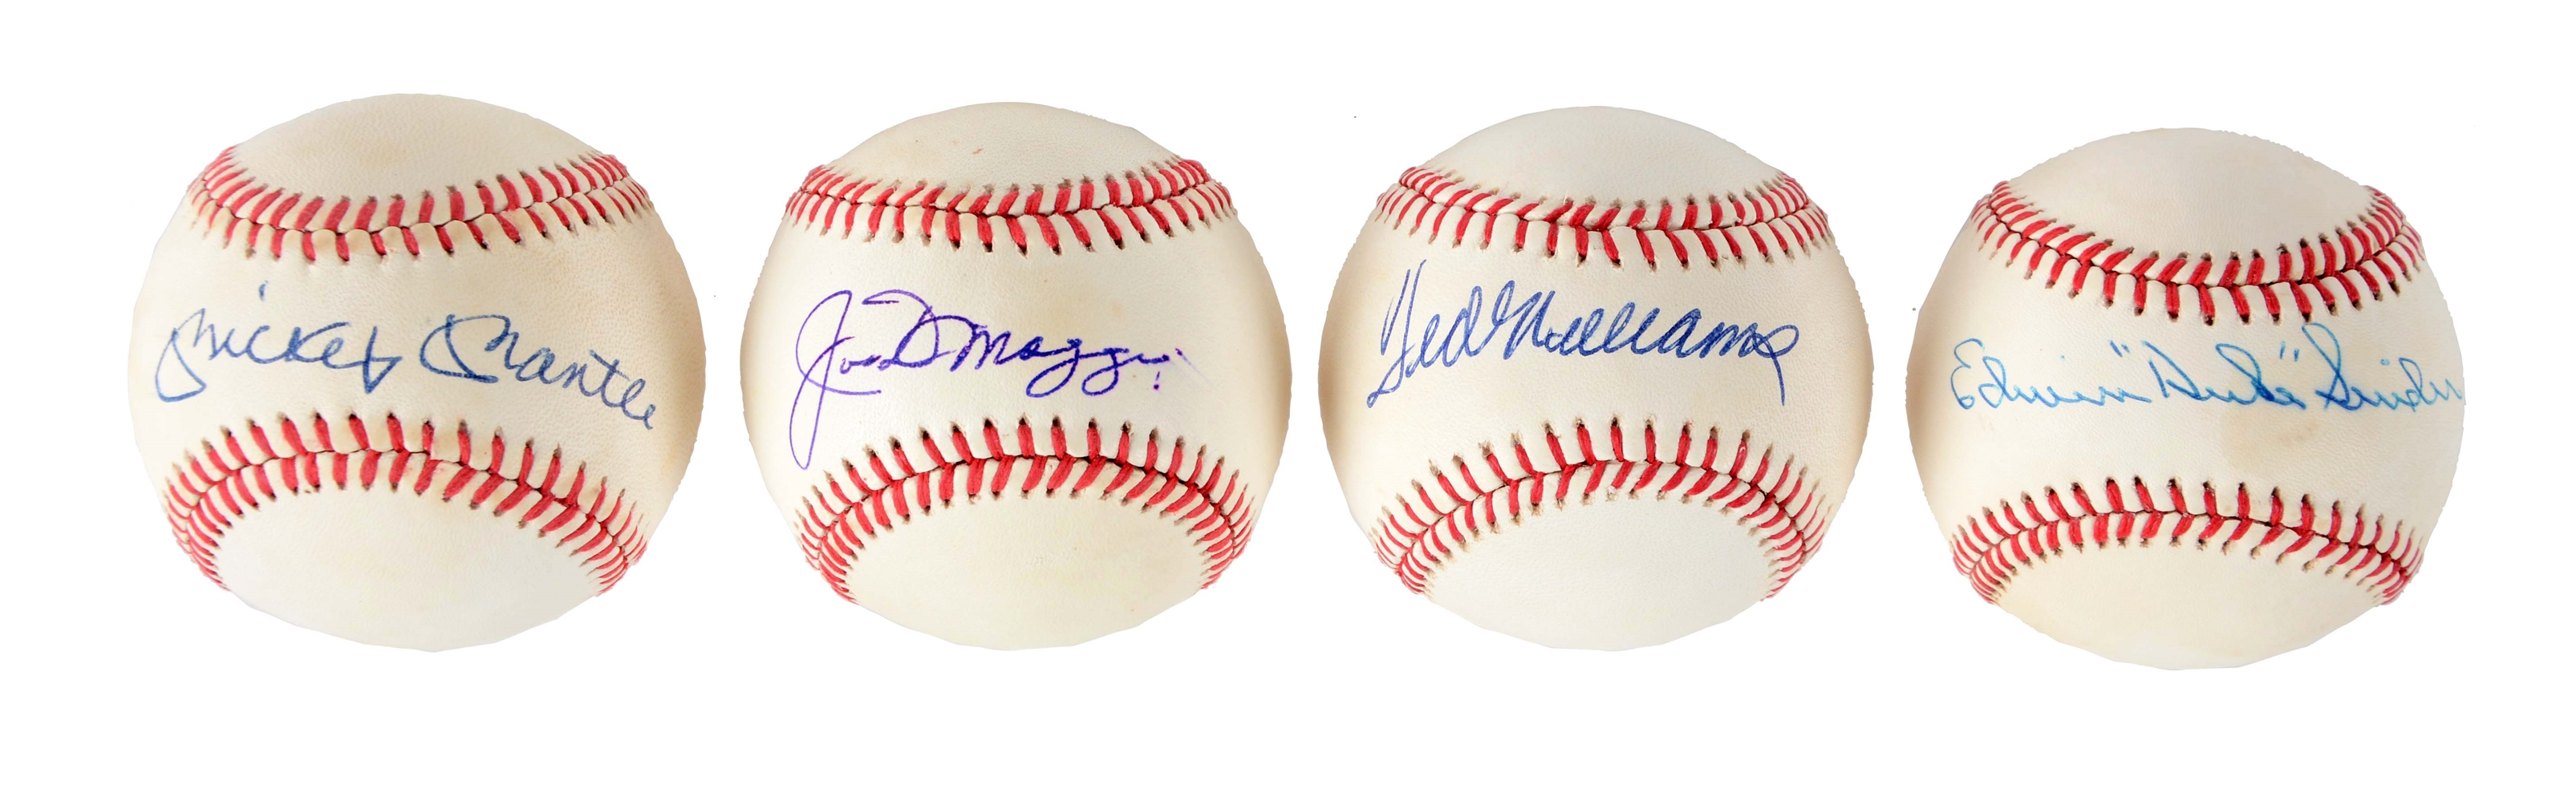 Lot of 4: Mantle, Williams, DiMaggio, & Snider Single Signed Baseballs.